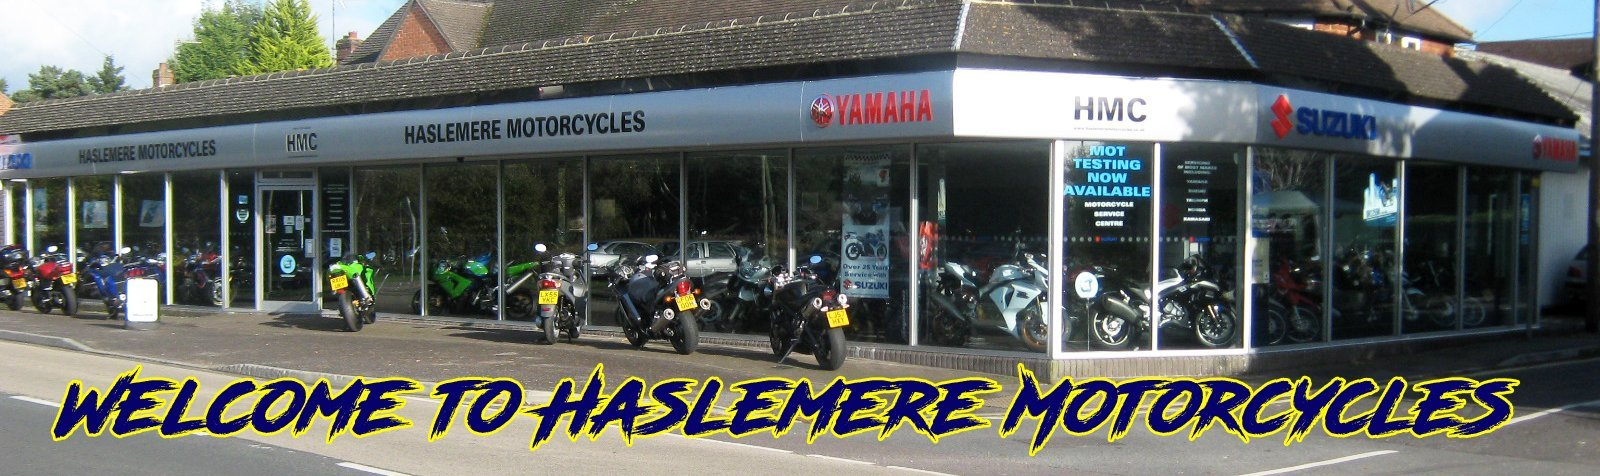 Haslemere Motorcycles shop front up to 180 bikes in stock